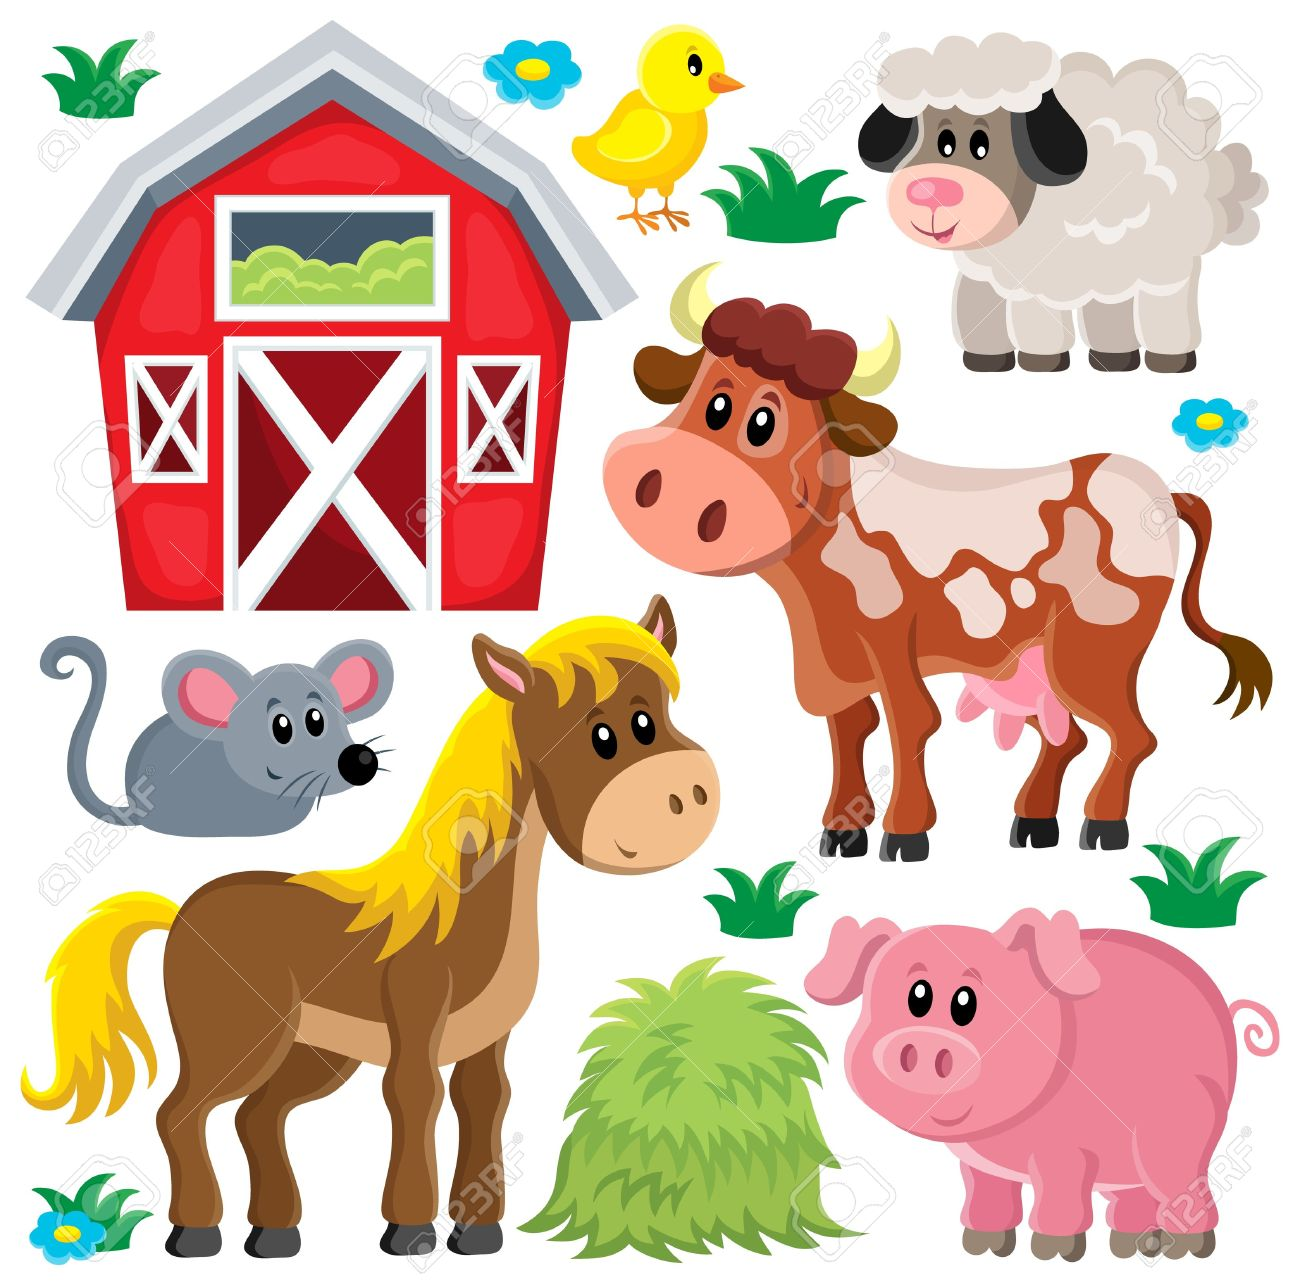 hight resolution of farm animals set 2 eps10 vector illustration stock vector 39562807